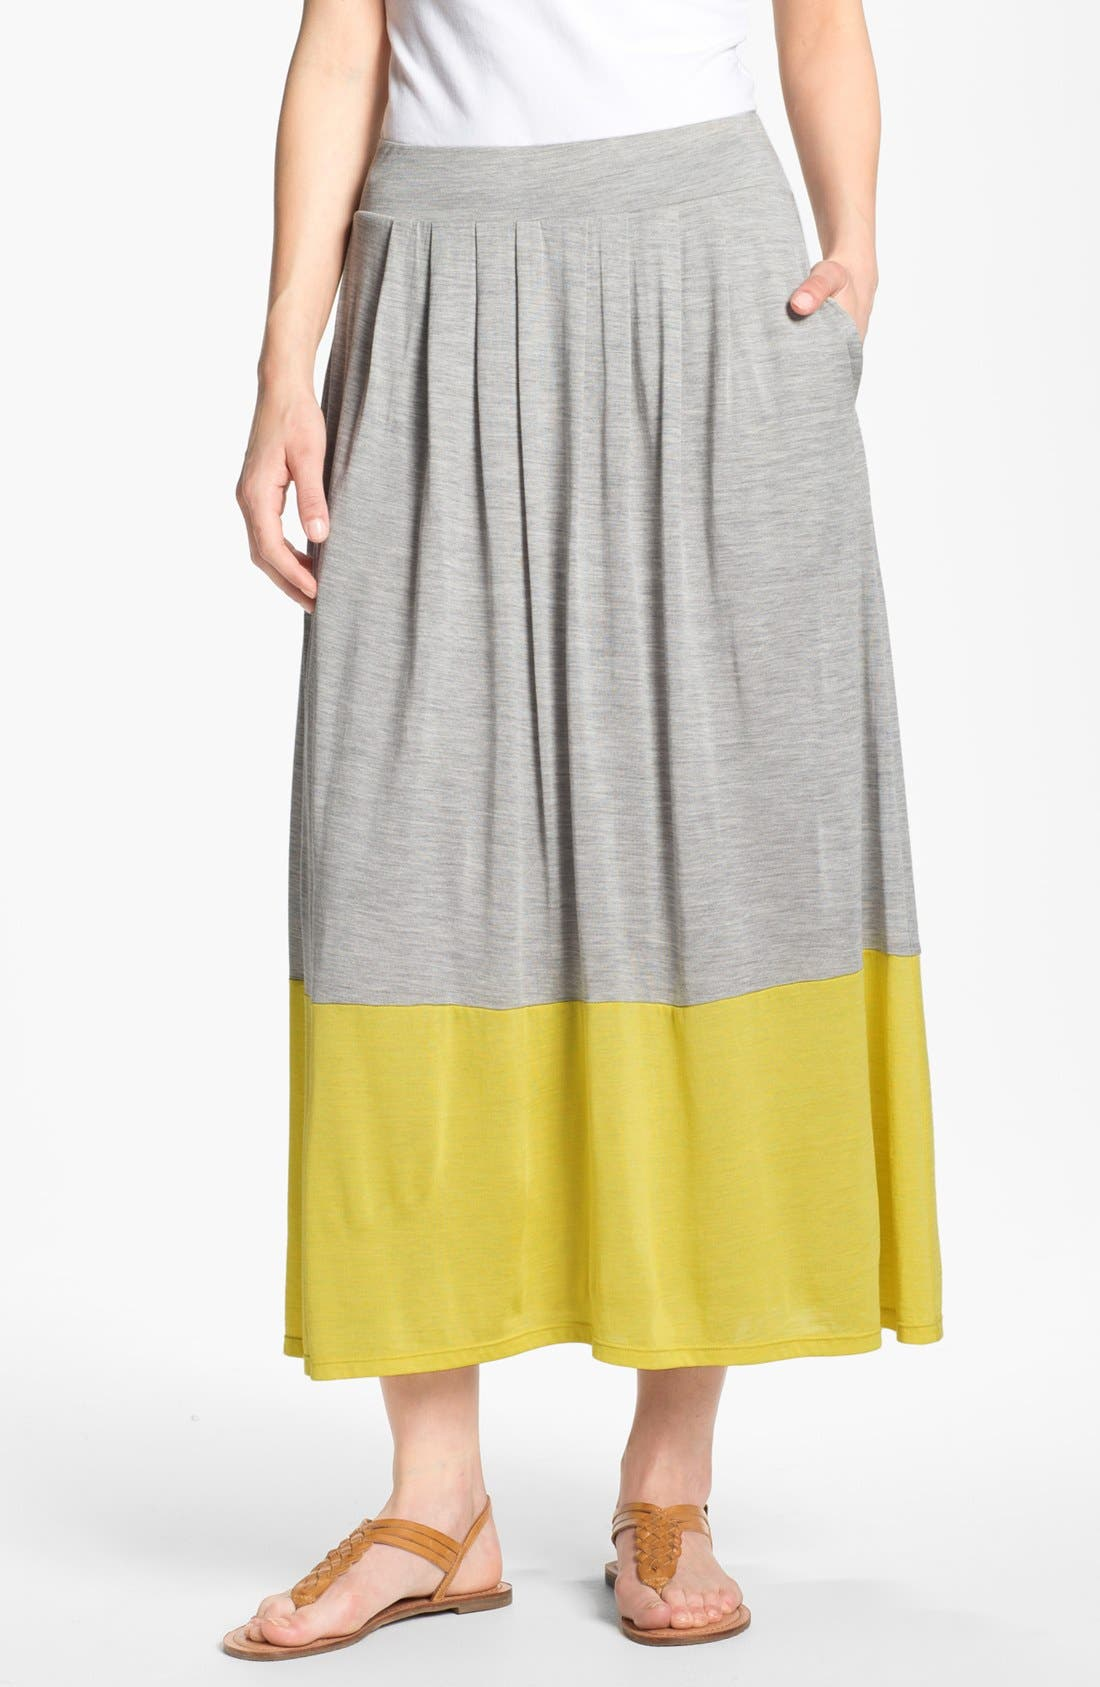 Alternate Image 1 Selected - Eileen Fisher Pleated Colorblock Midi Skirt (Plus Size)